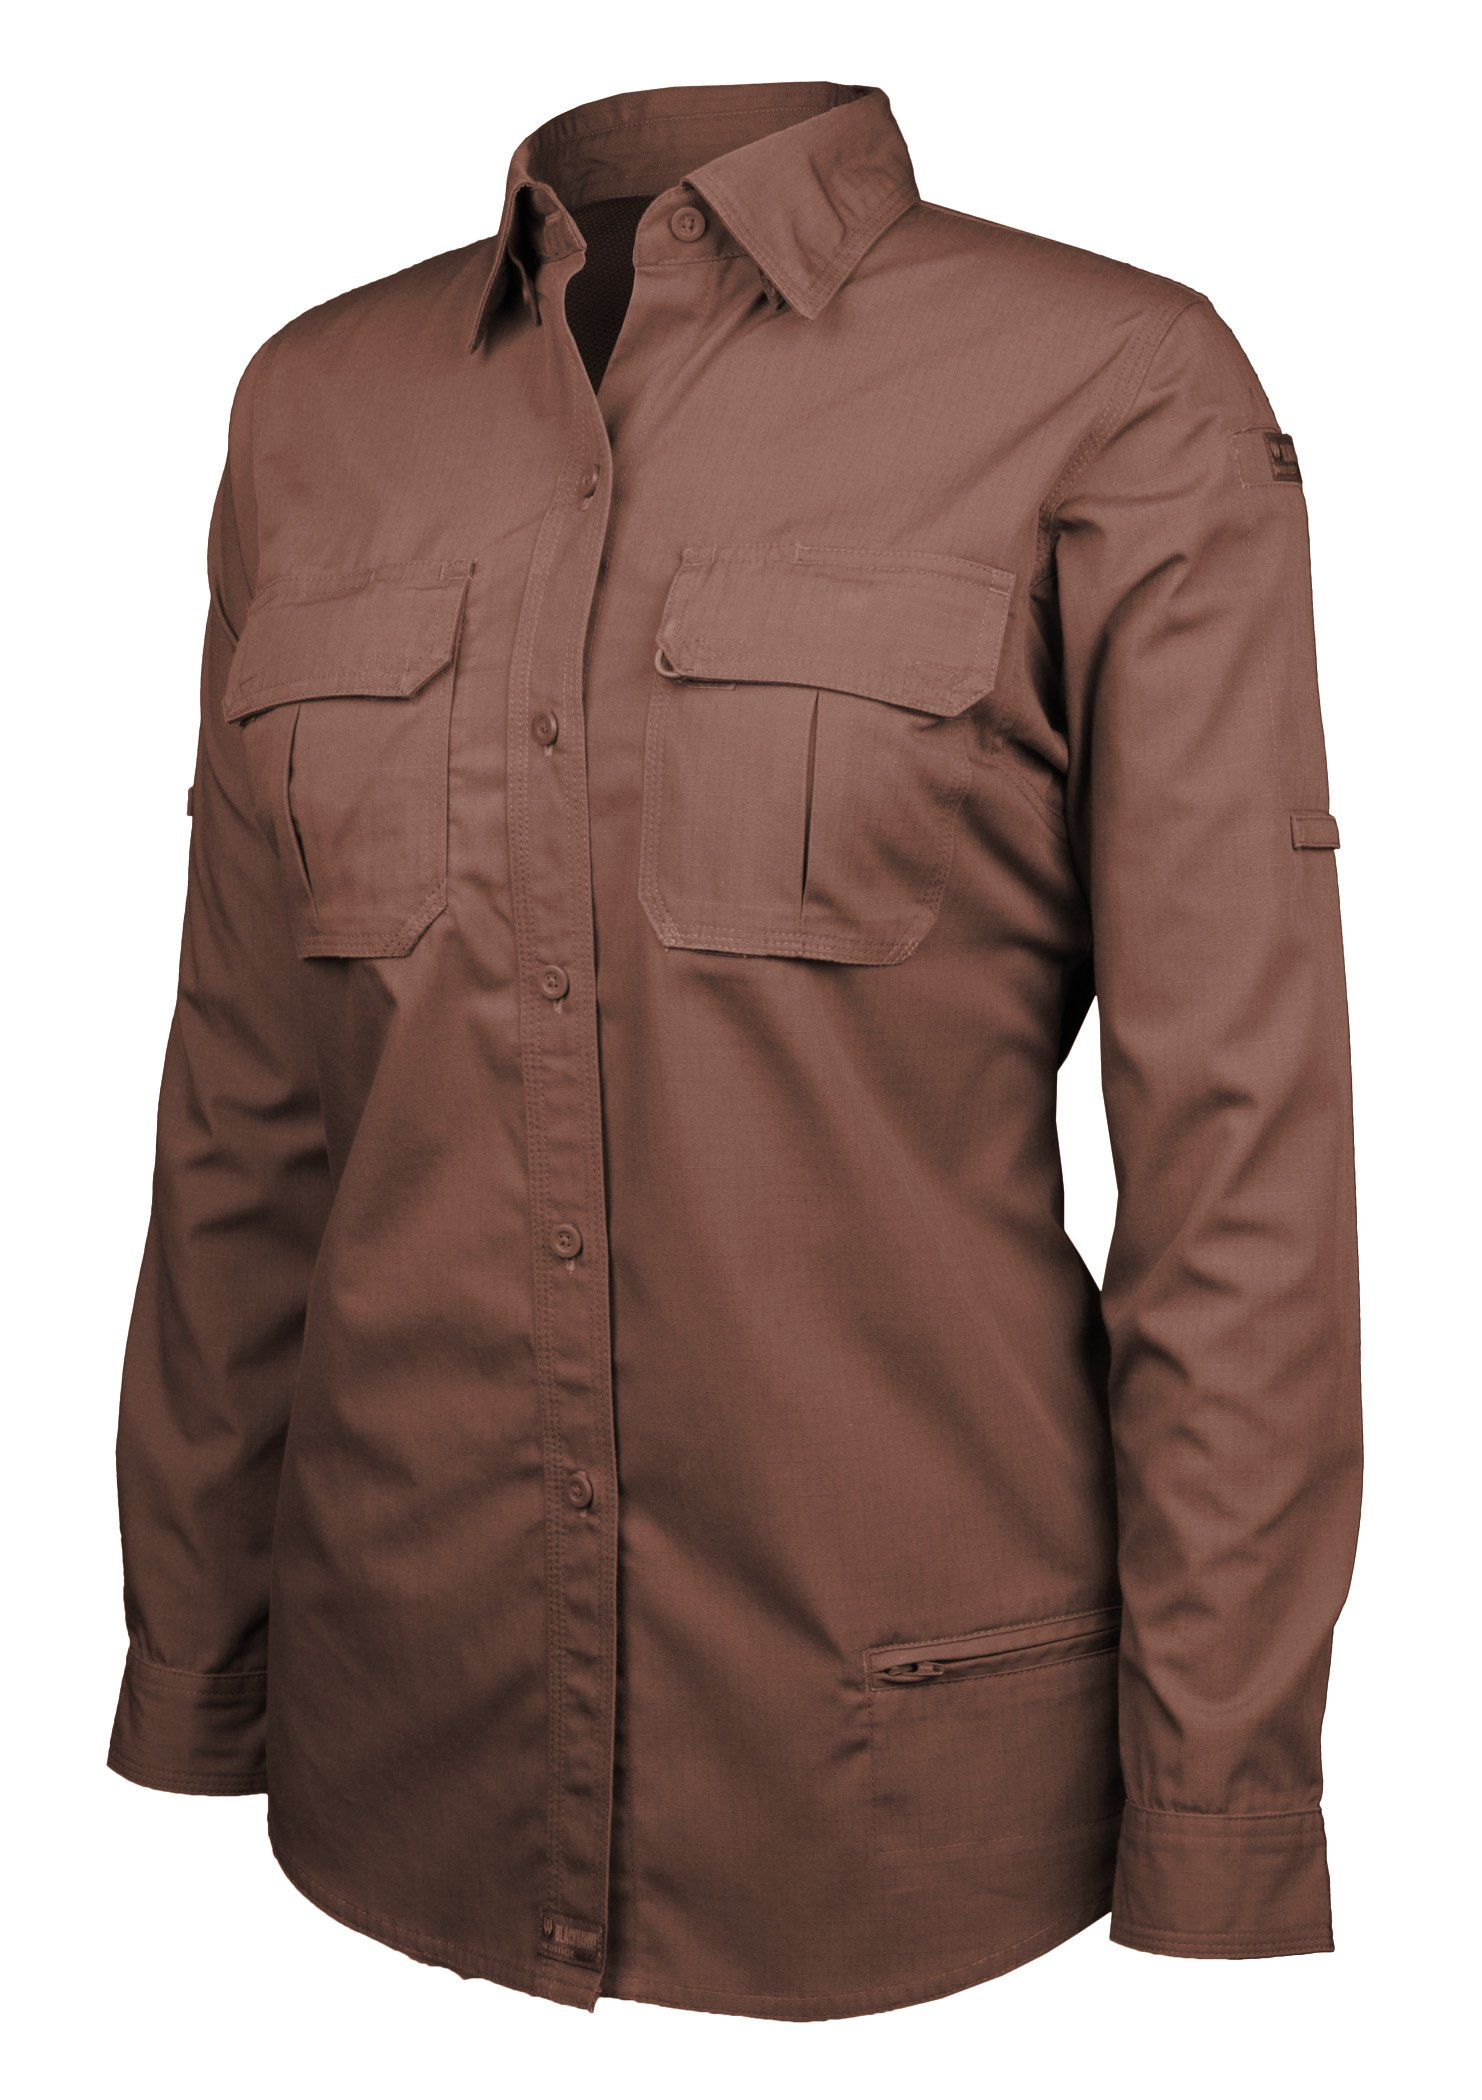 Blackhawk! Women's Lightweight Tactical Long Sleeve Shirt, Chocolate Brown, XX-Large by BLACKHAWK!